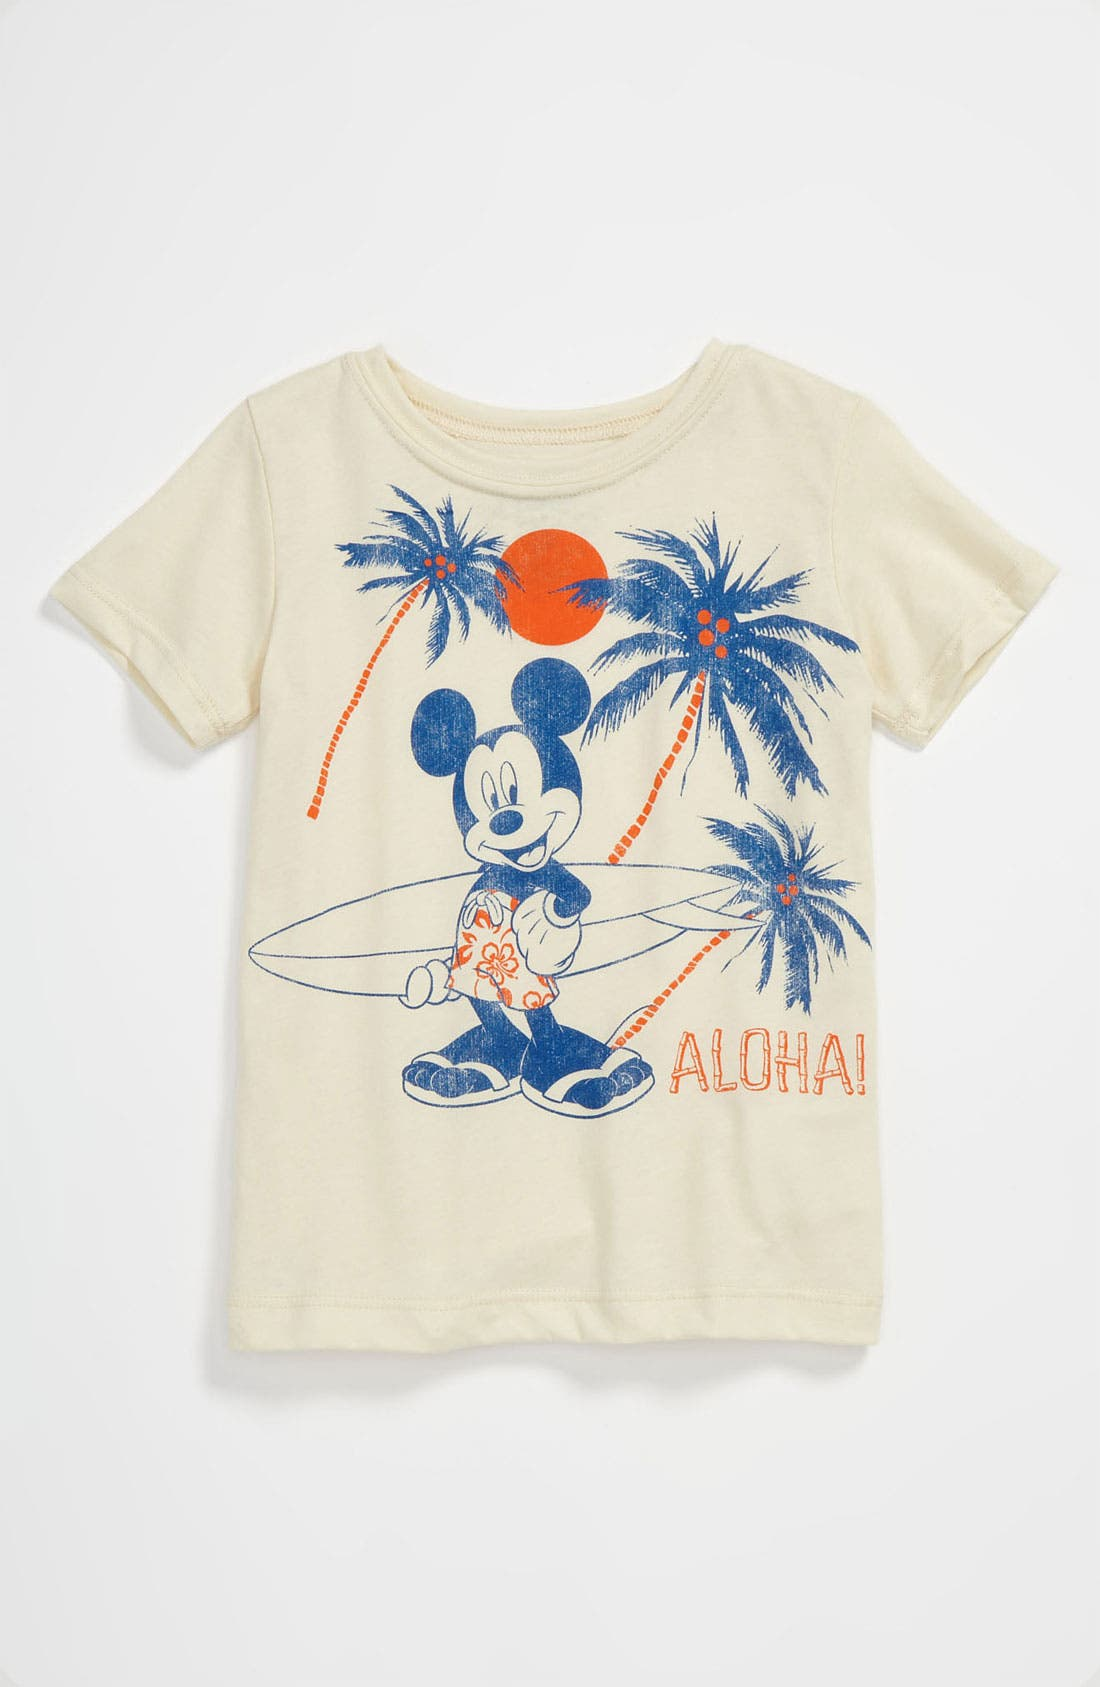 Alternate Image 1 Selected - Mighty Fine T-Shirt (Toddler)